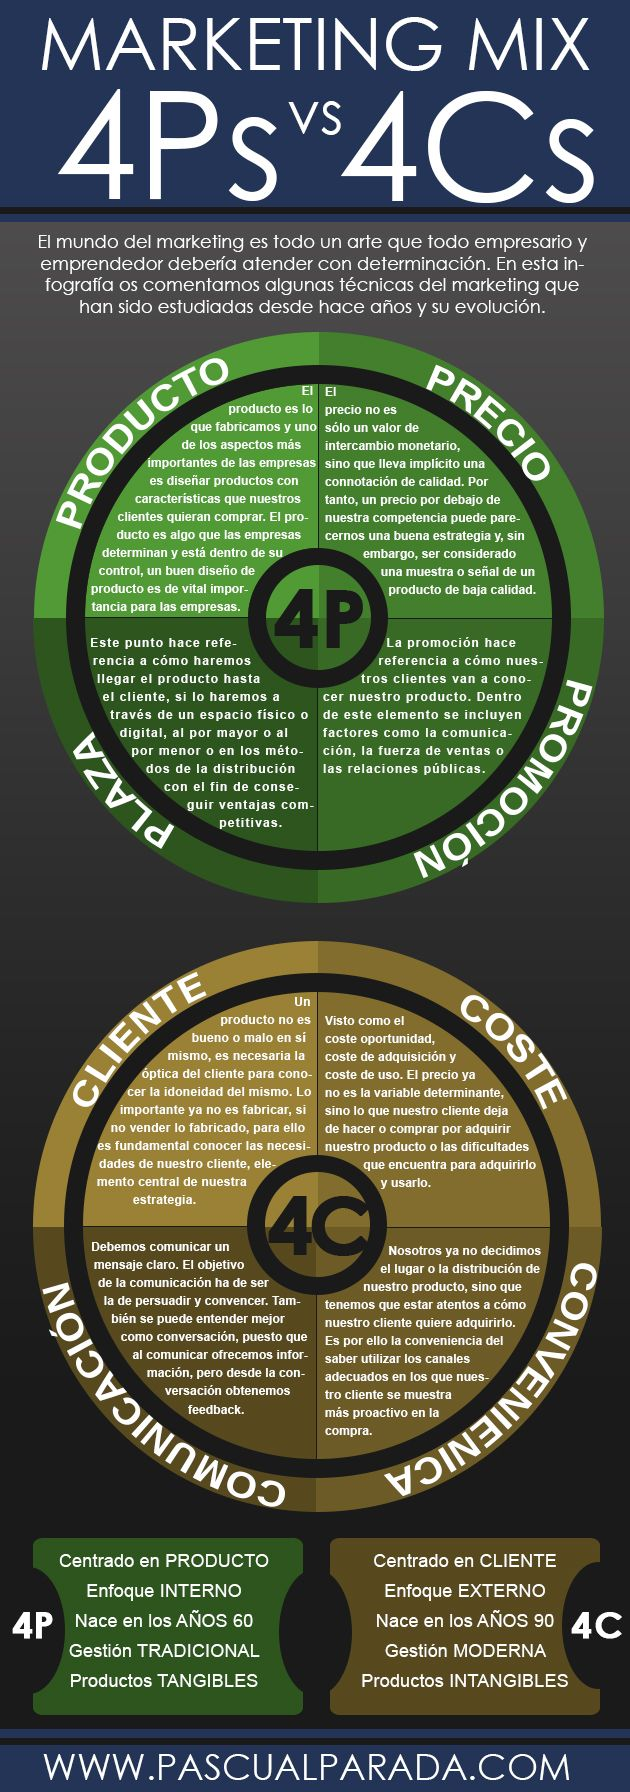 Las 4 Ps y las 4 Cs del Marketing